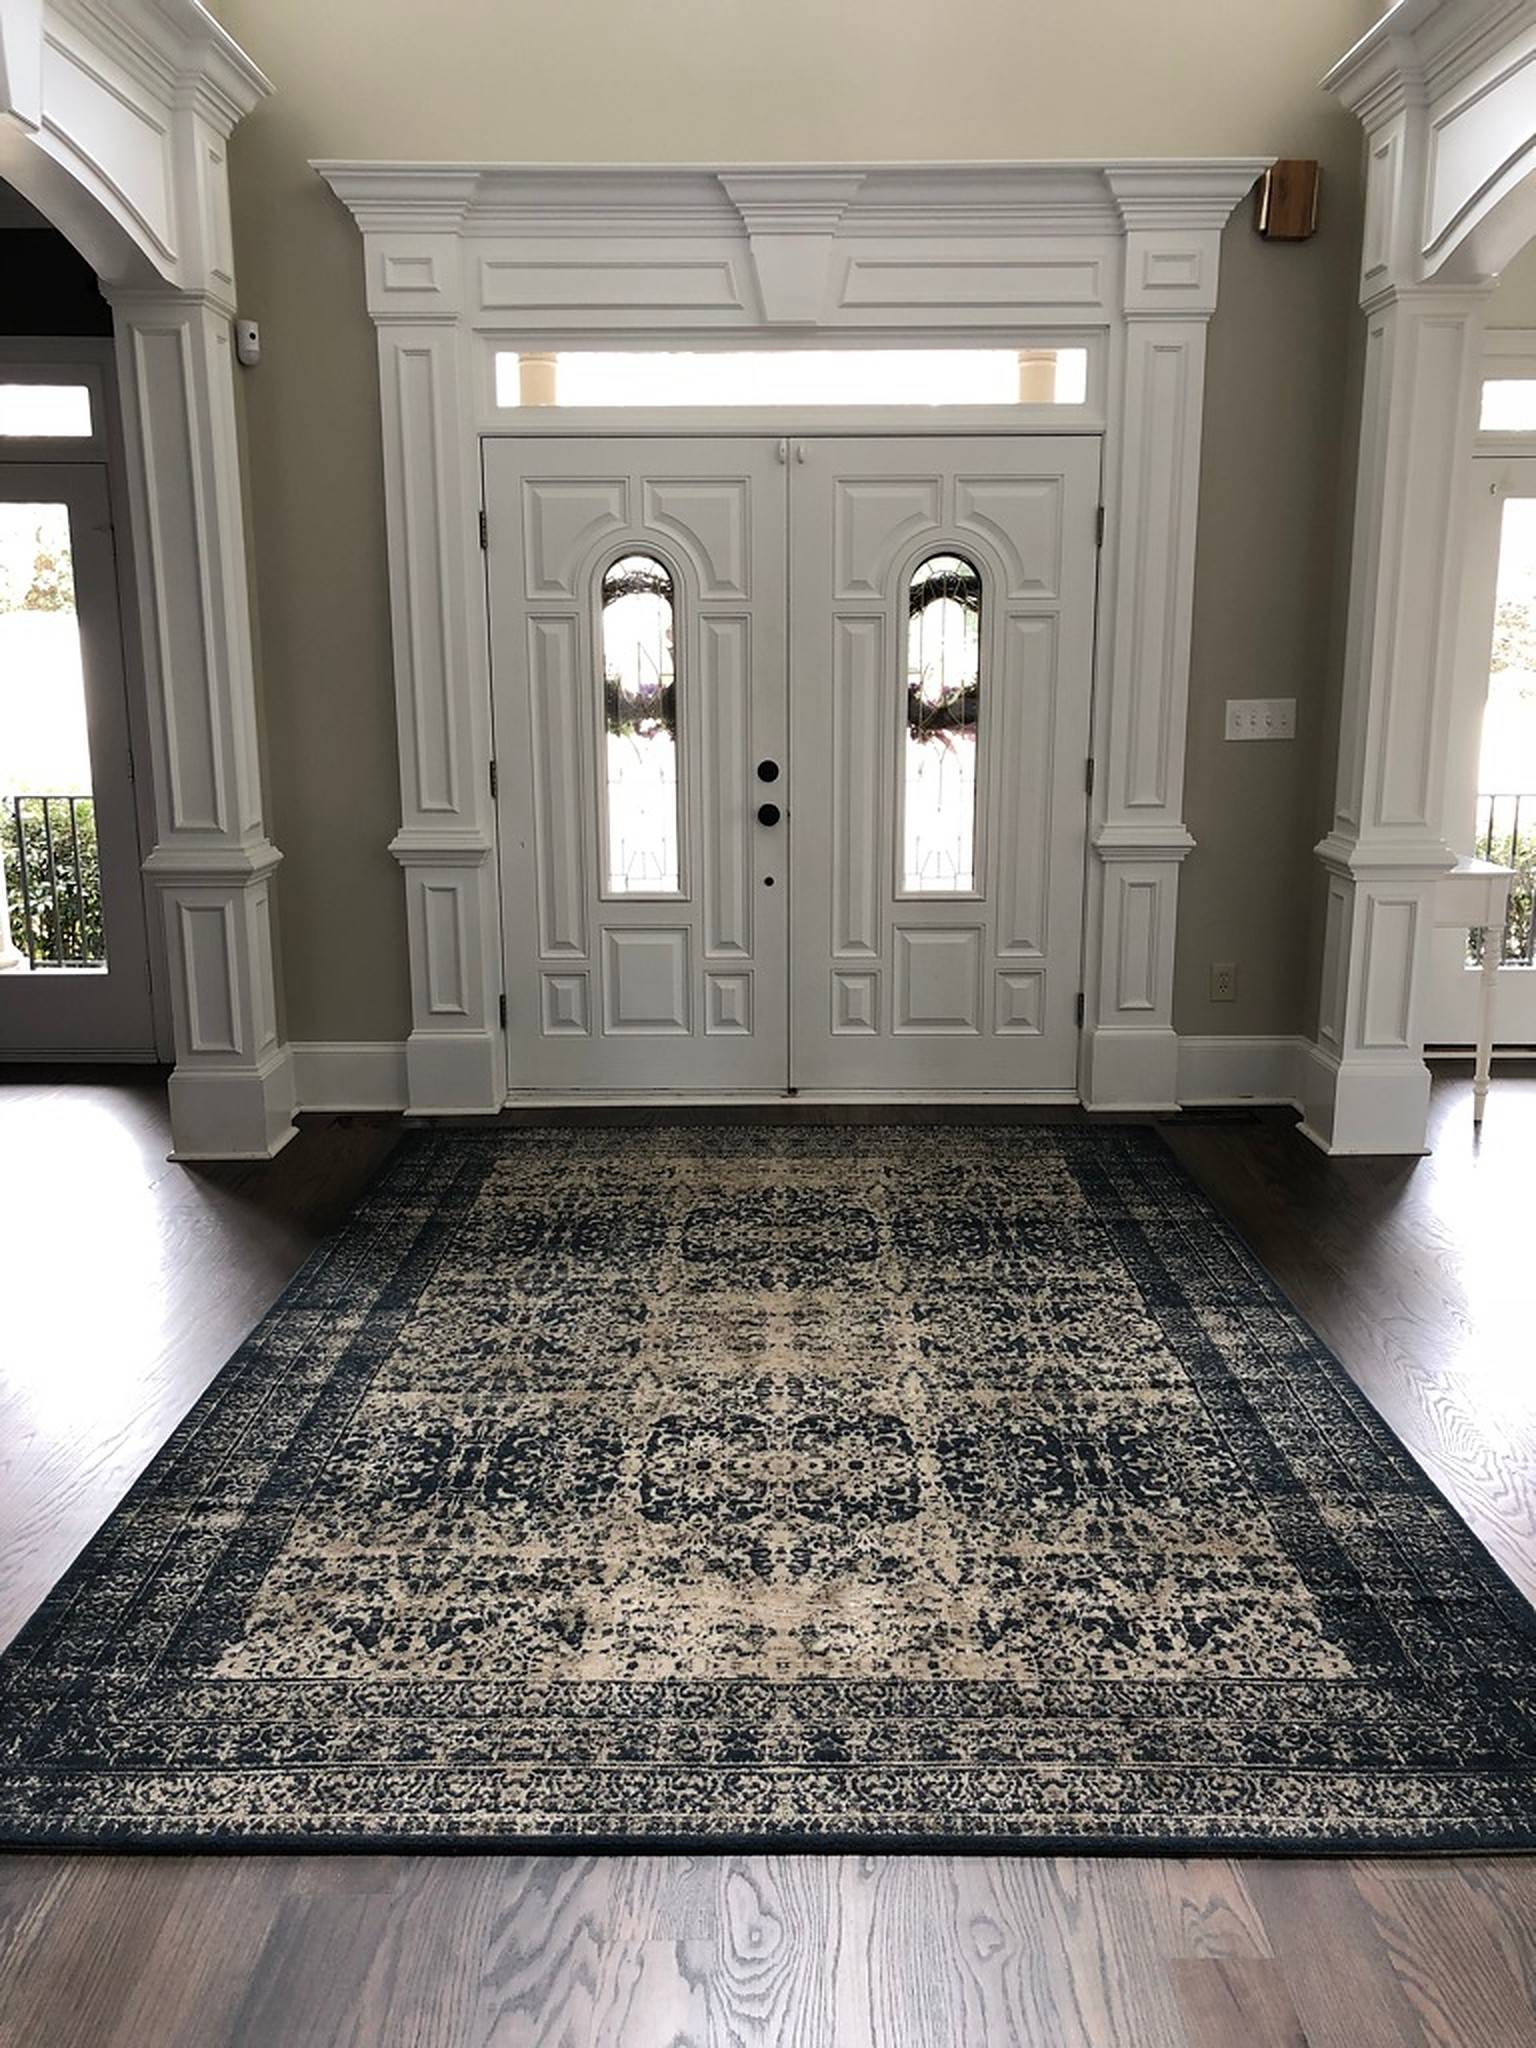 Large rug by front door entrance